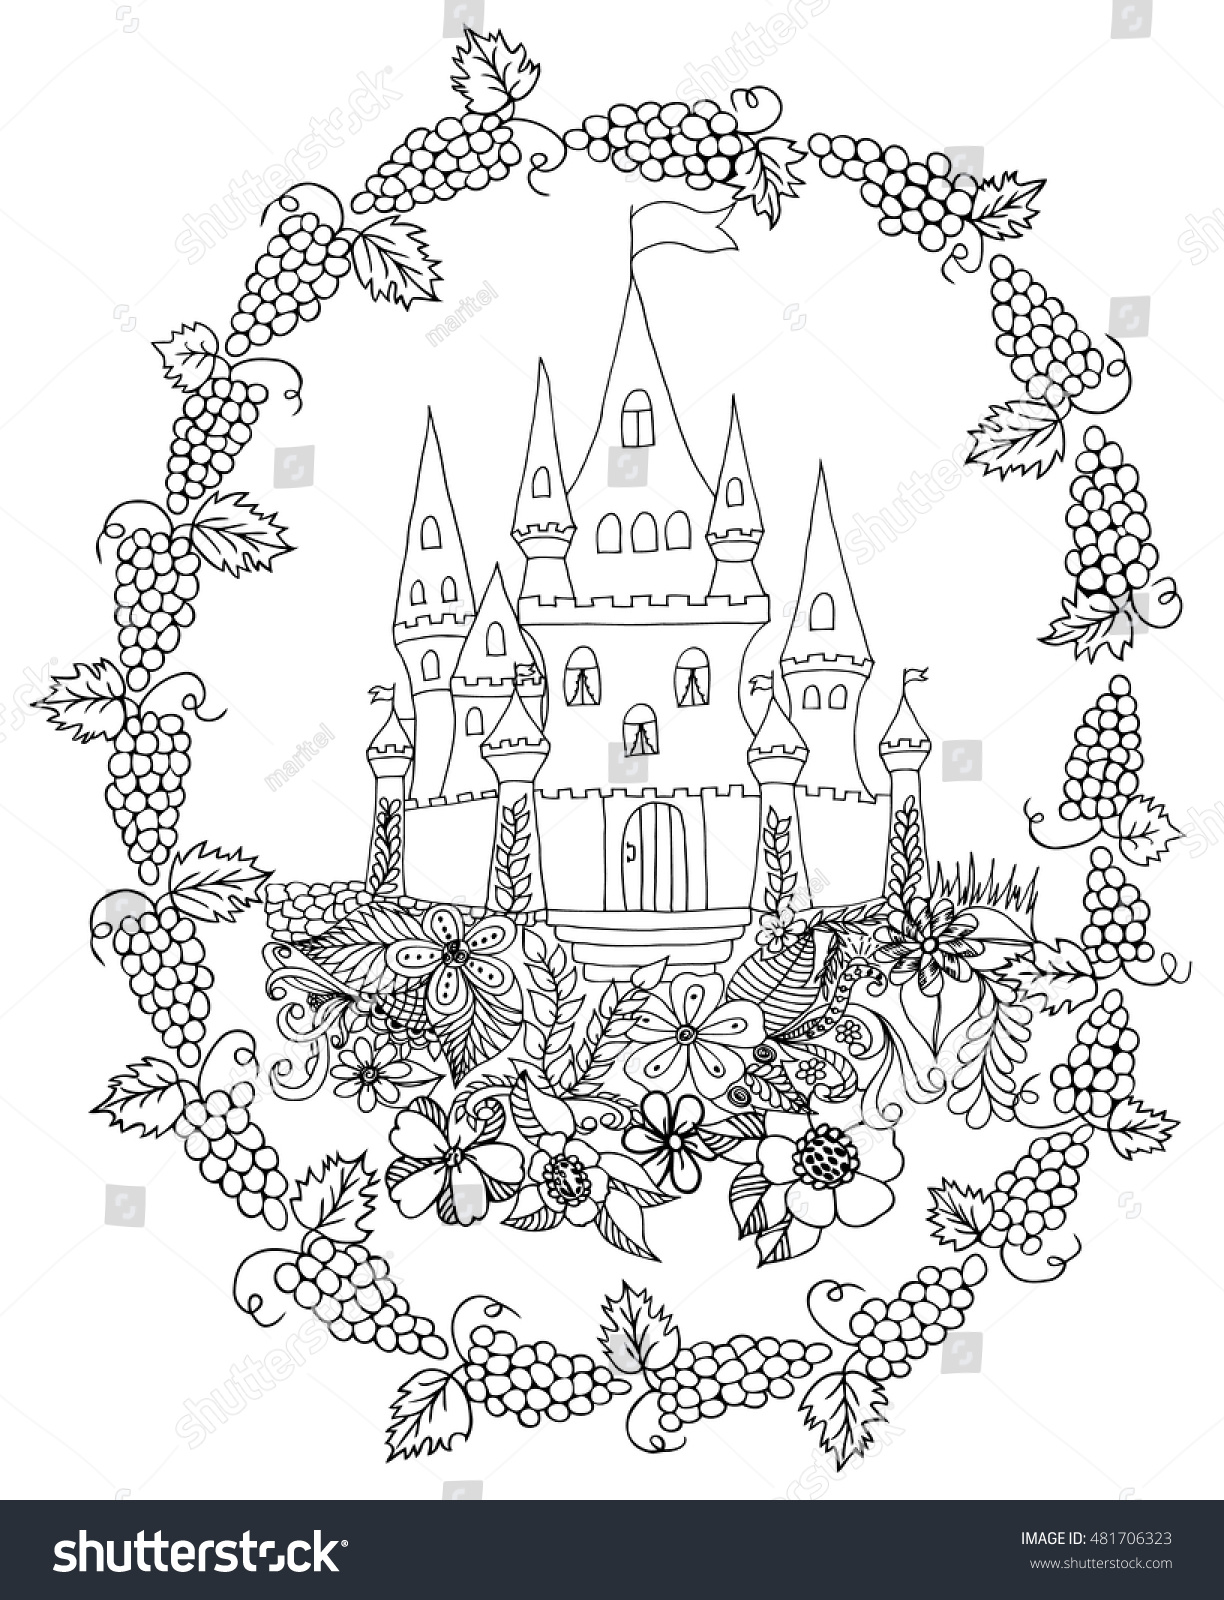 Vector illustration zentangle palace among flowers stock vector Trippy Coloring Pages Pattern Coloring Pages Zentangle Coloring Pages Tree